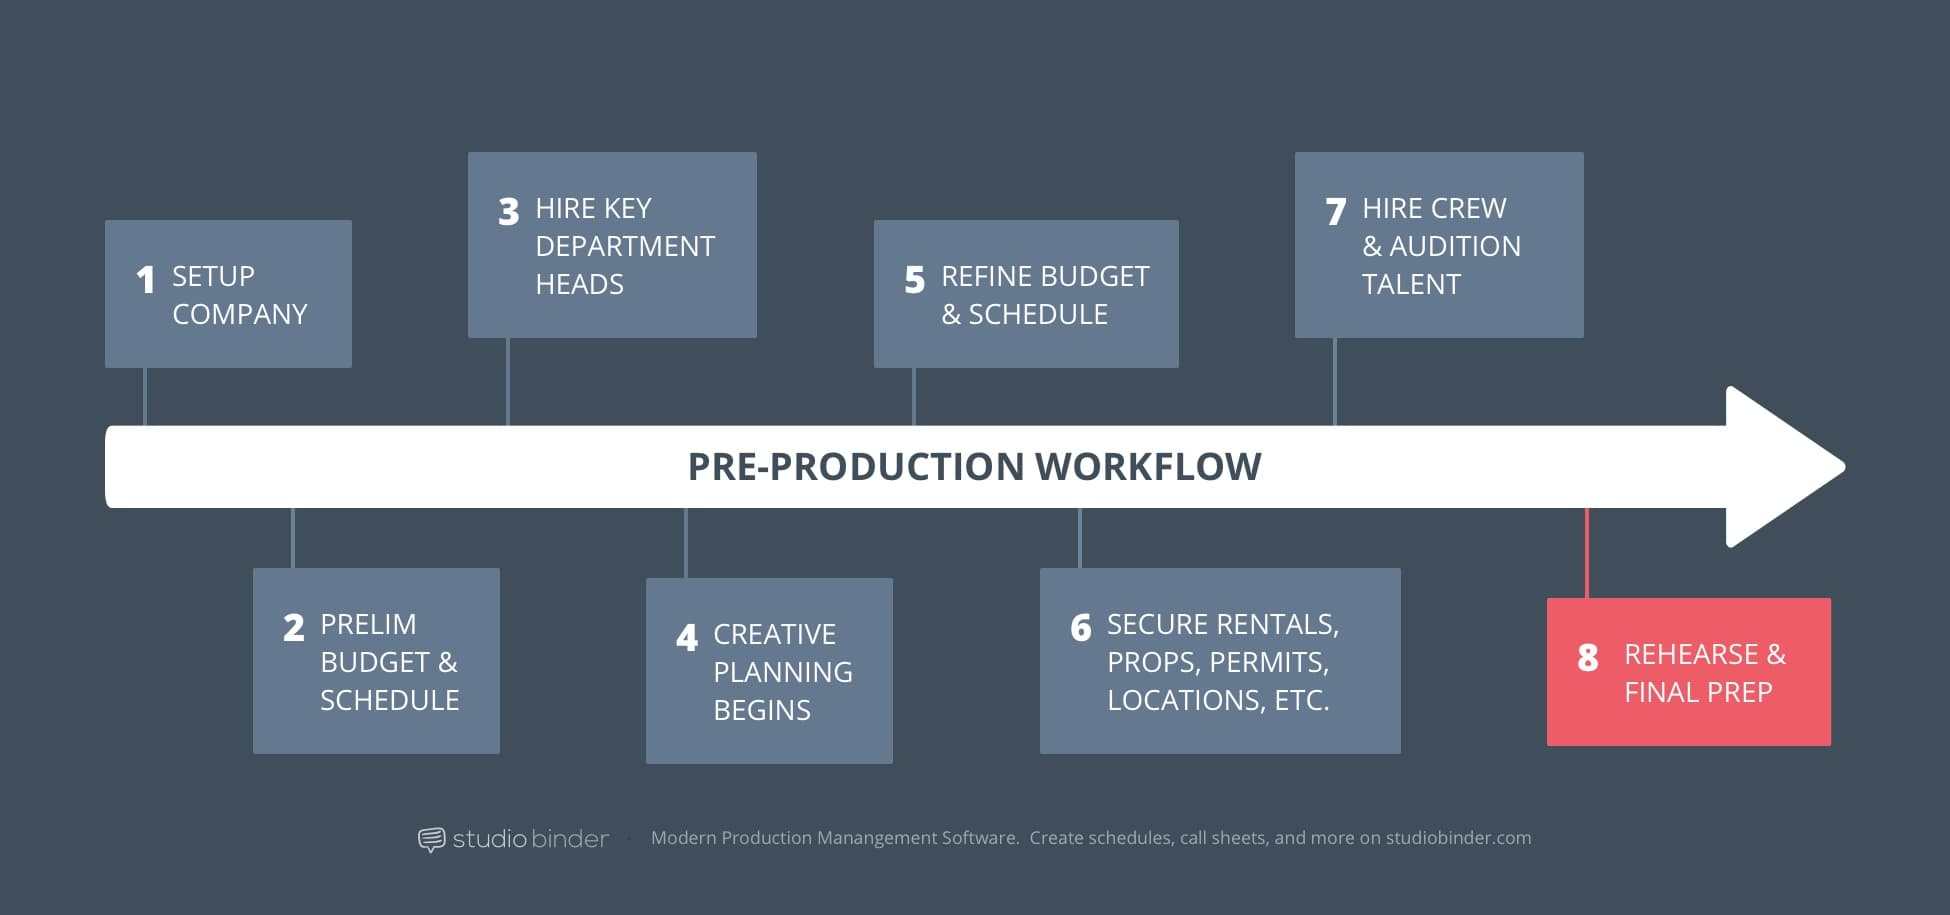 8 - StudioBinder Pre-Production Workflow - Rehearse and Final Prep